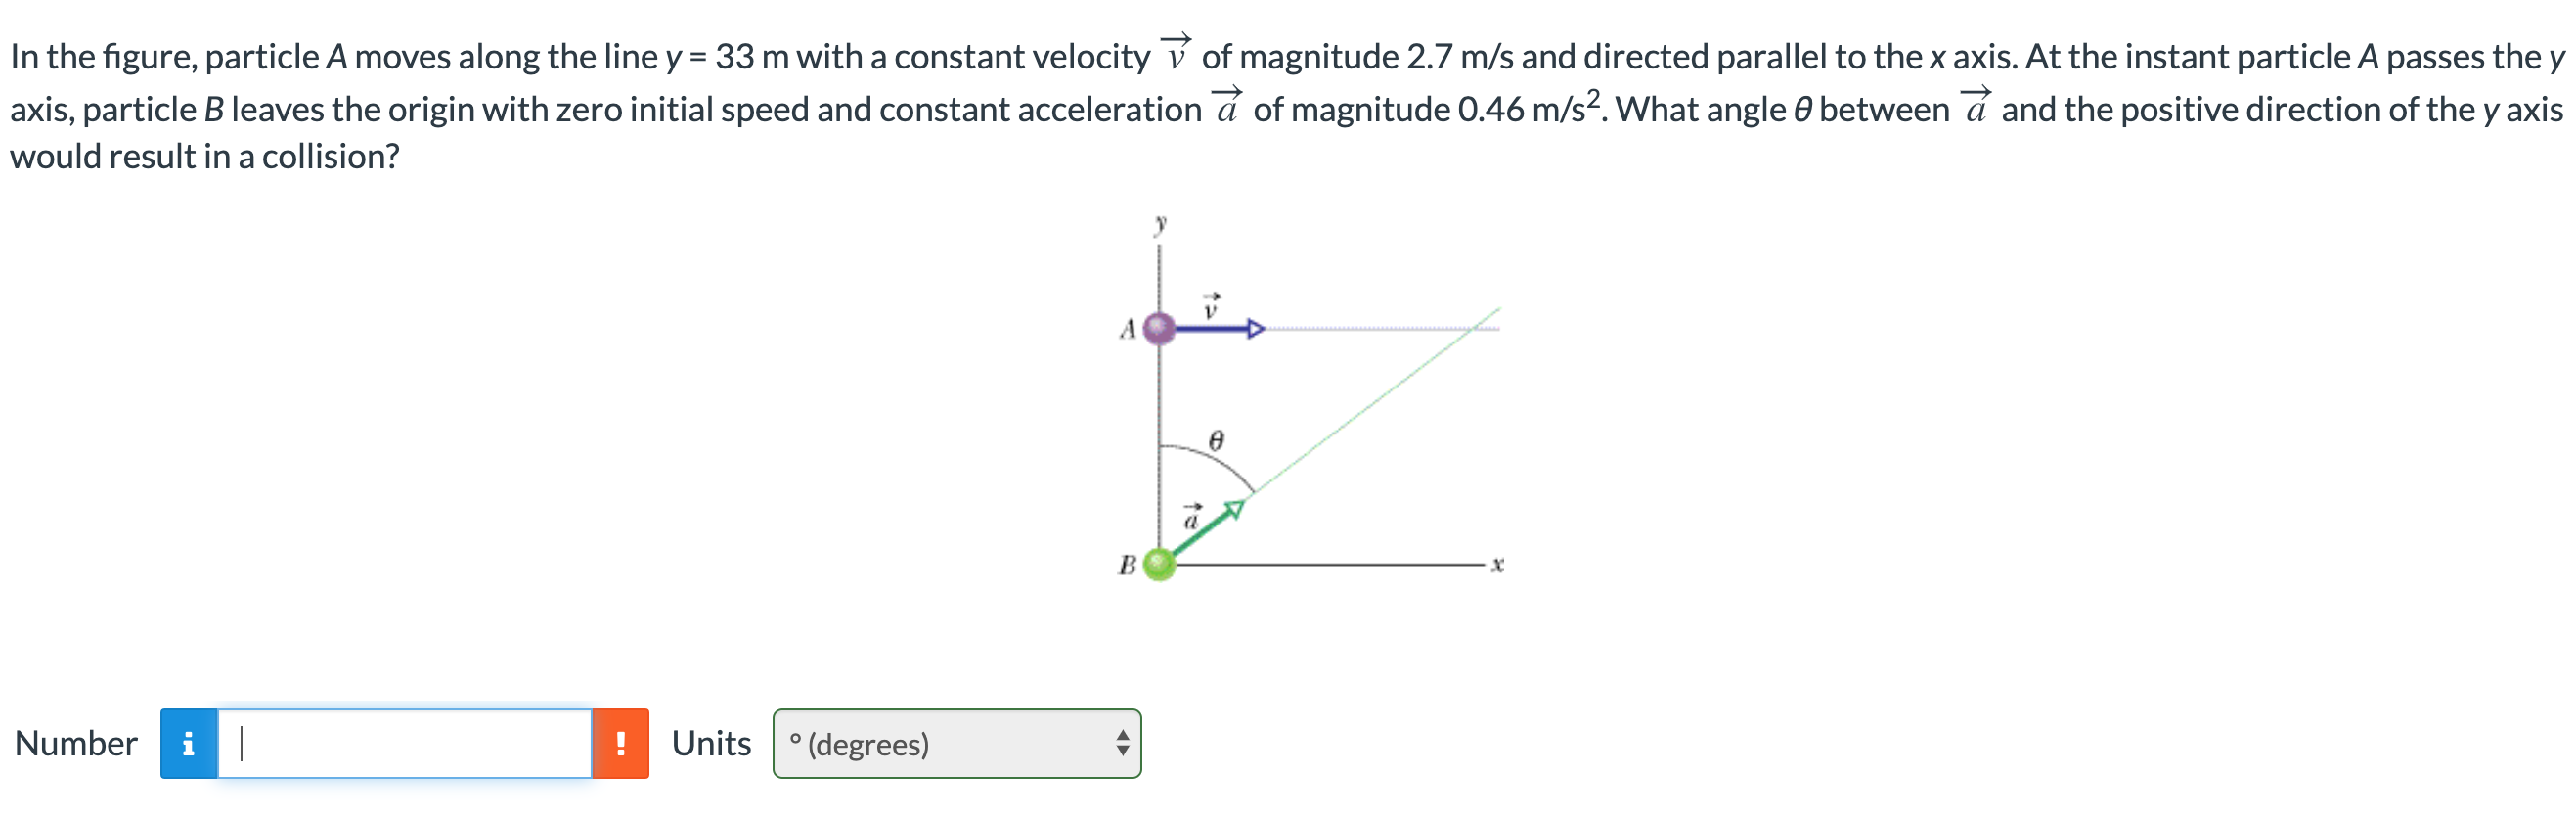 In the figure, particle A moves along the line y = 33 m with a constant velocity V of magnitude 2.7 m/s and directed parallel